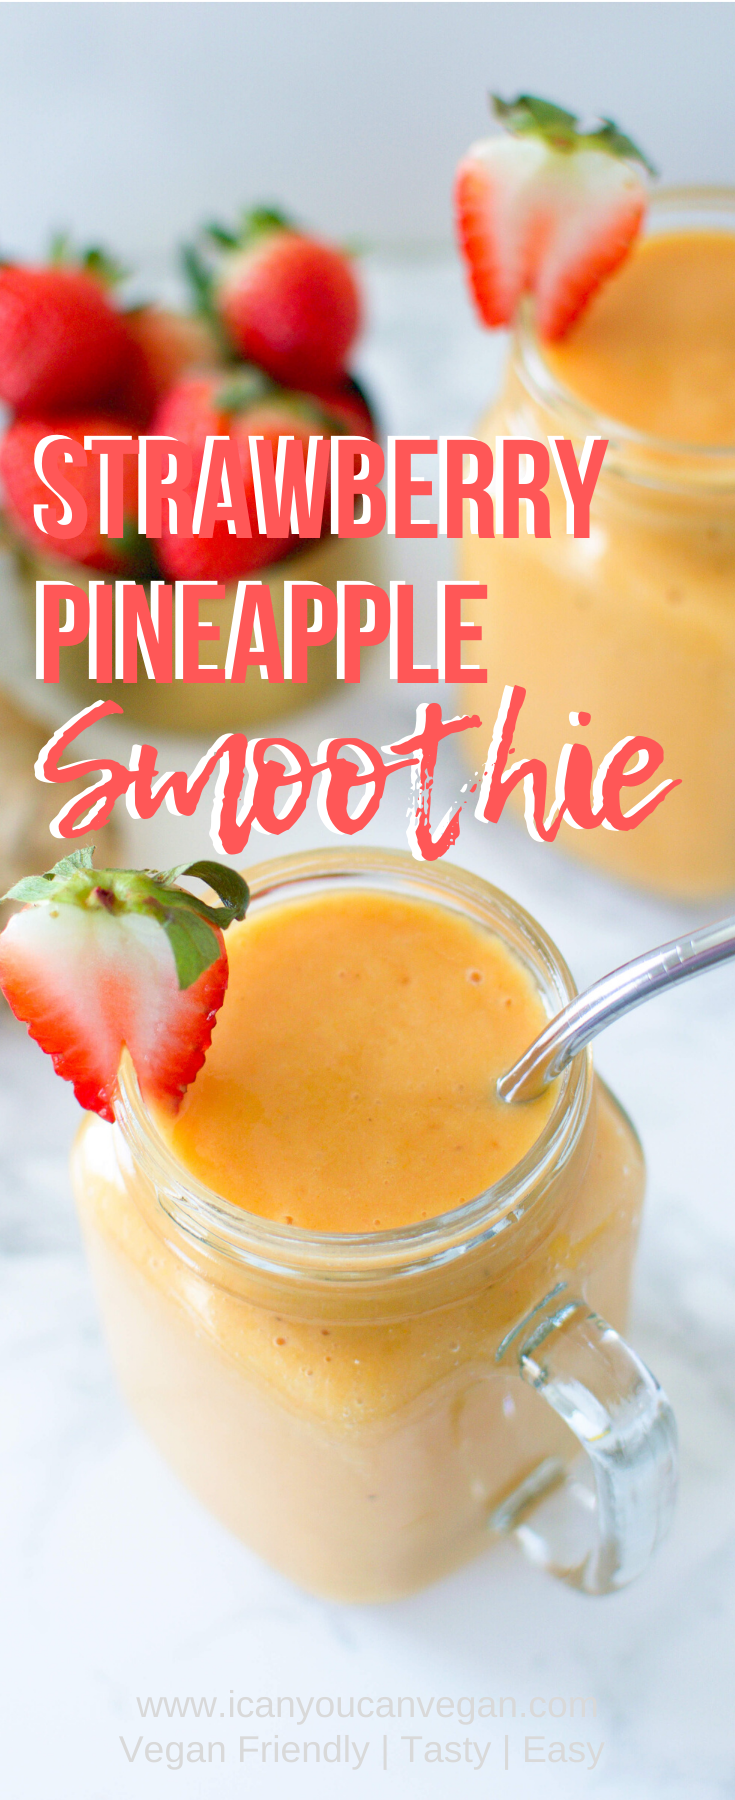 Strawberry Pineapple Smoothie | I Can You Can Vegan ICanYouCanVegan